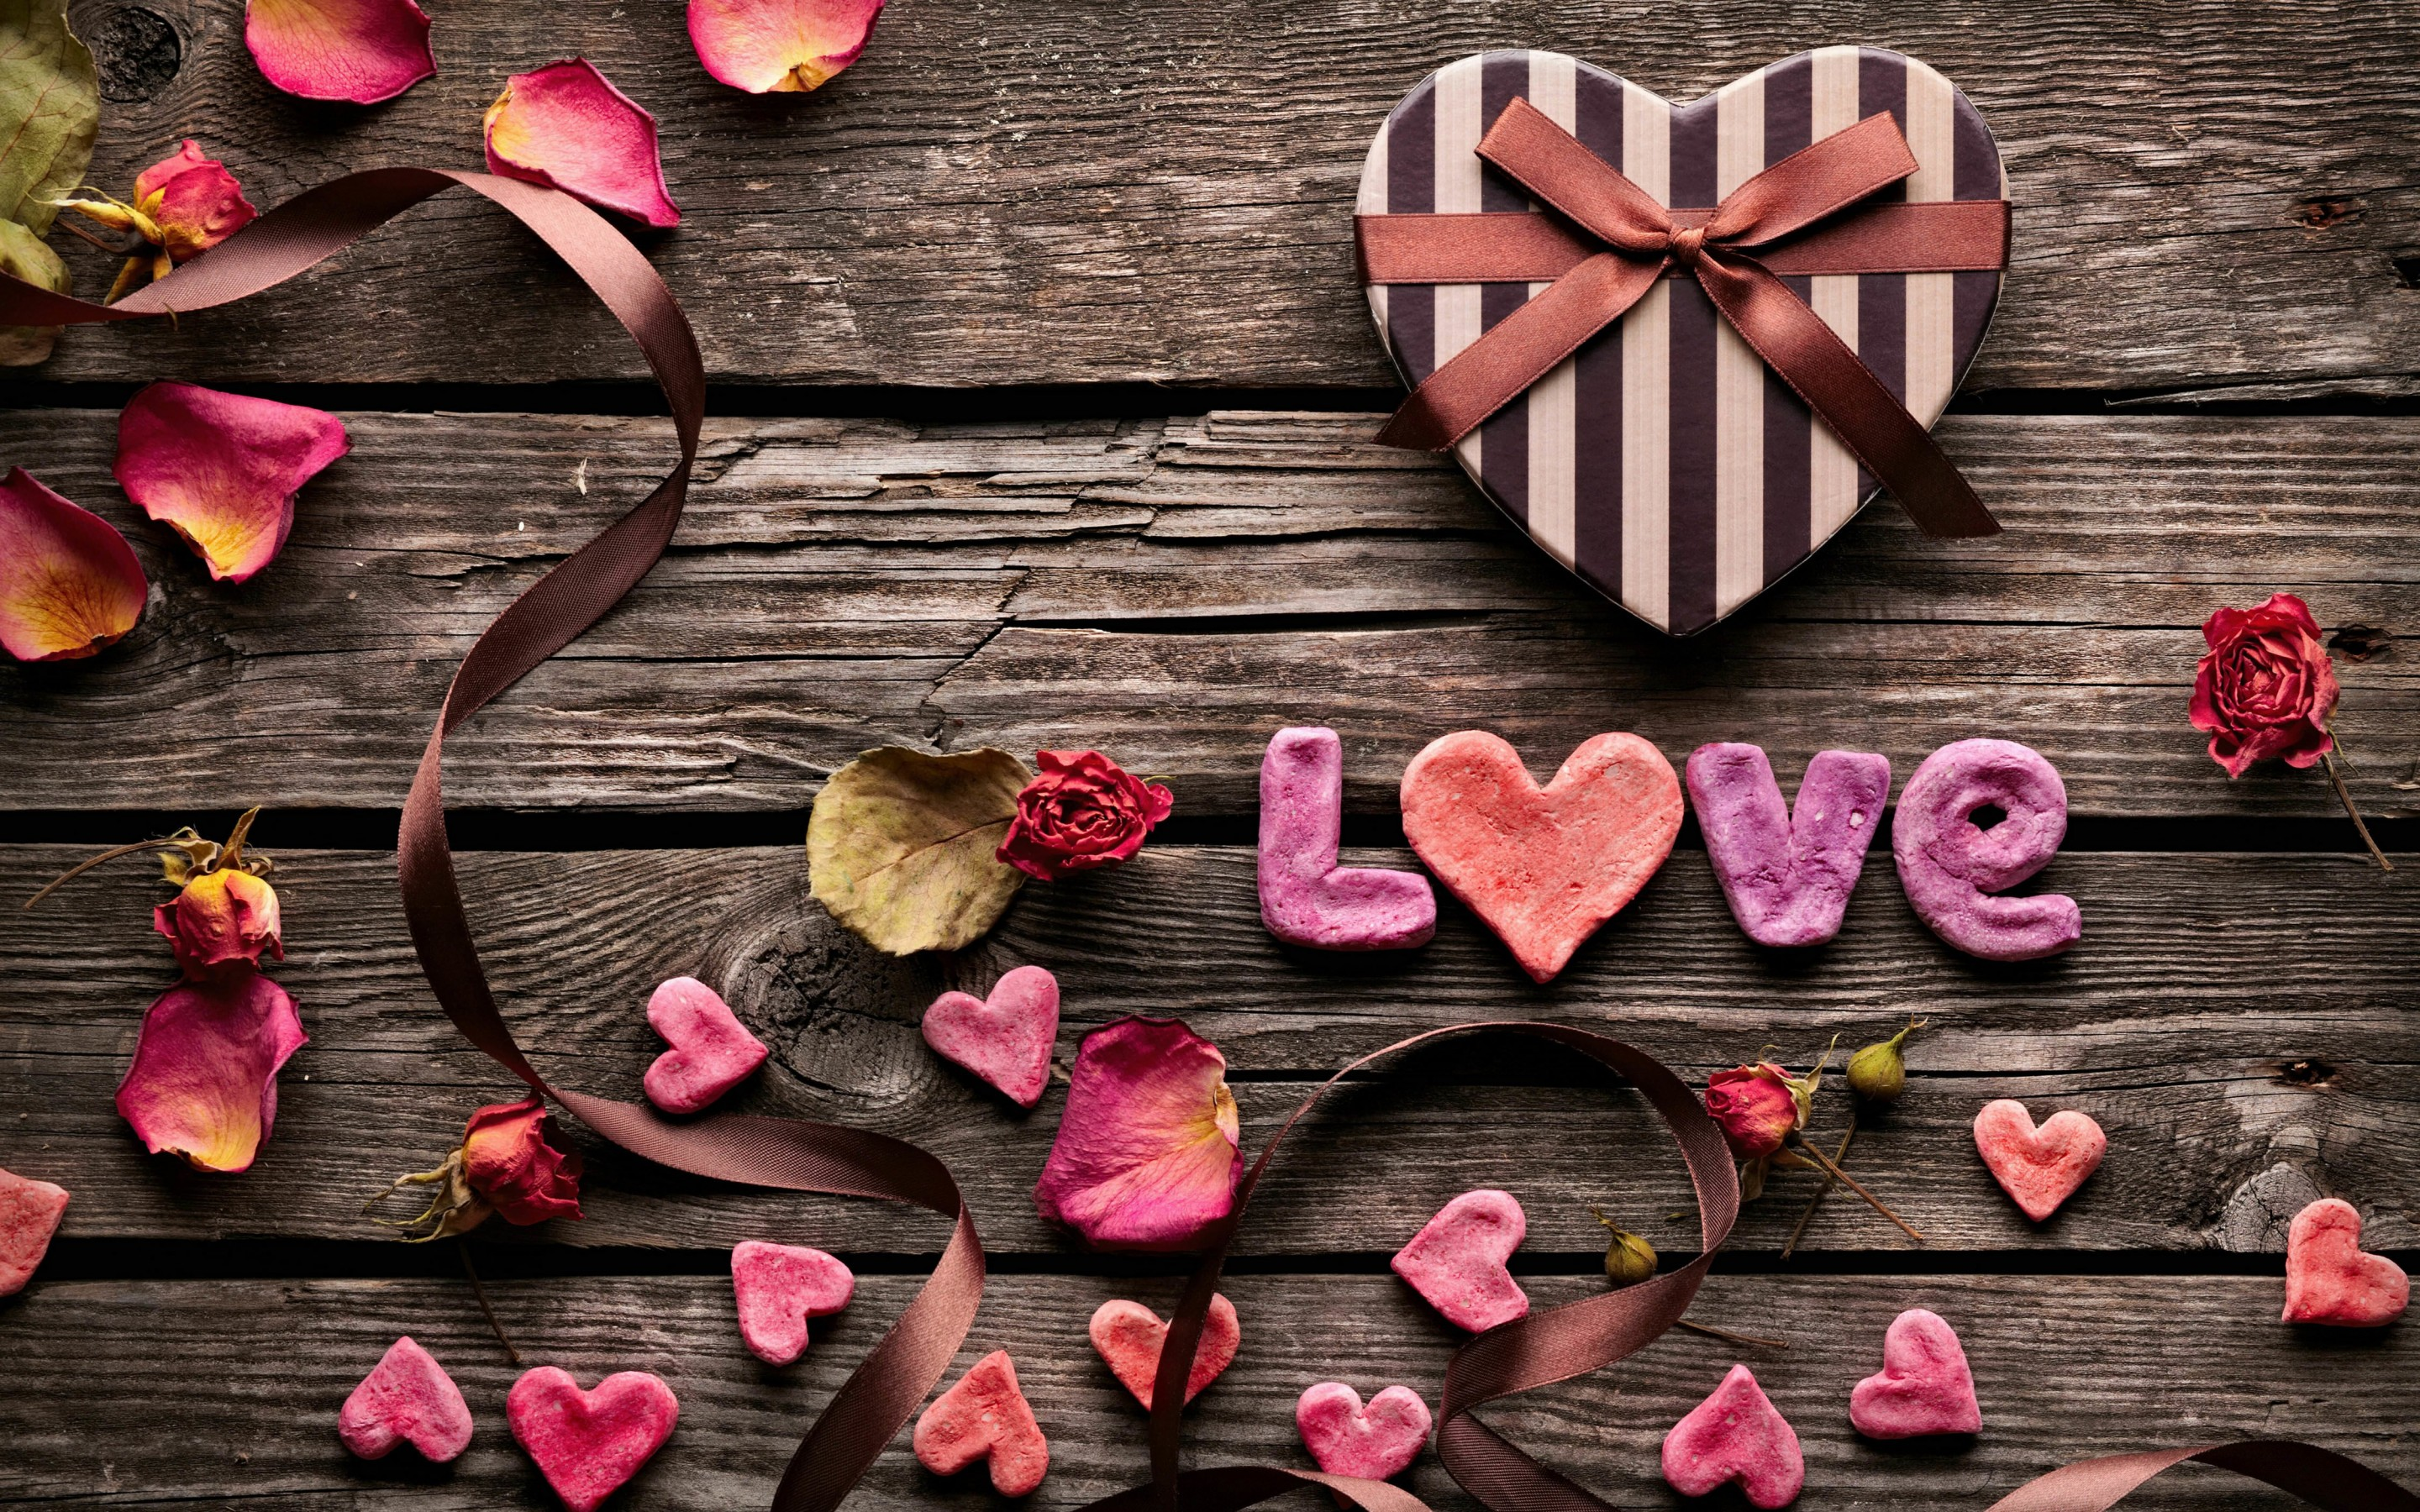 Romantic Gift Wallpaper for Desktop 2880x1800